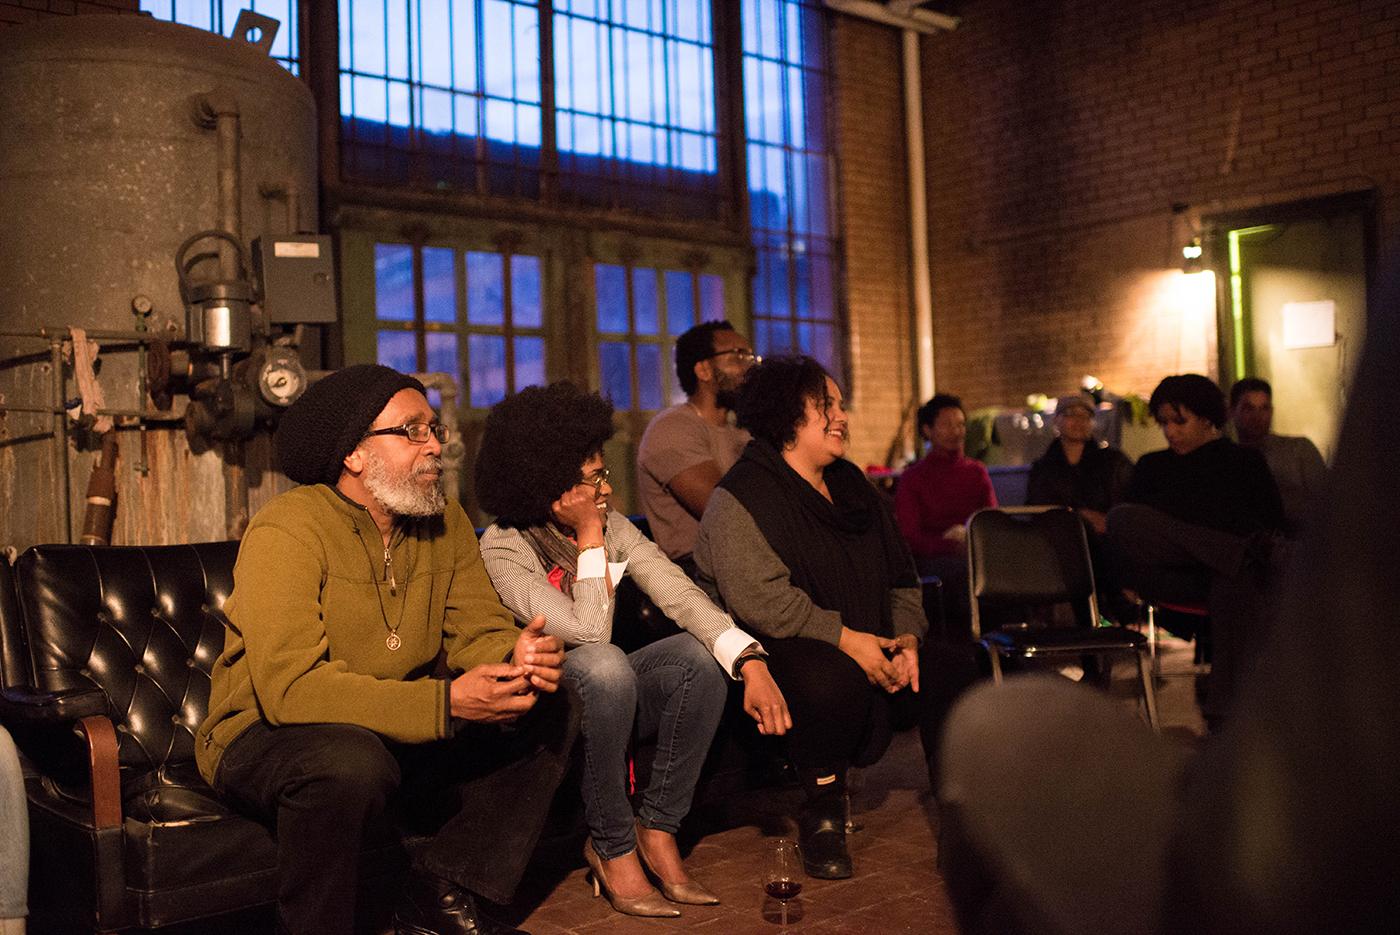 Malik Yakini (Detroit Black Community Food Security Network), Pashon Murray (Detroit Dirt), and Dream Hampton (writer) participate in post dinner panel on food justice in Detroit. (photo by Justin Millhouse)